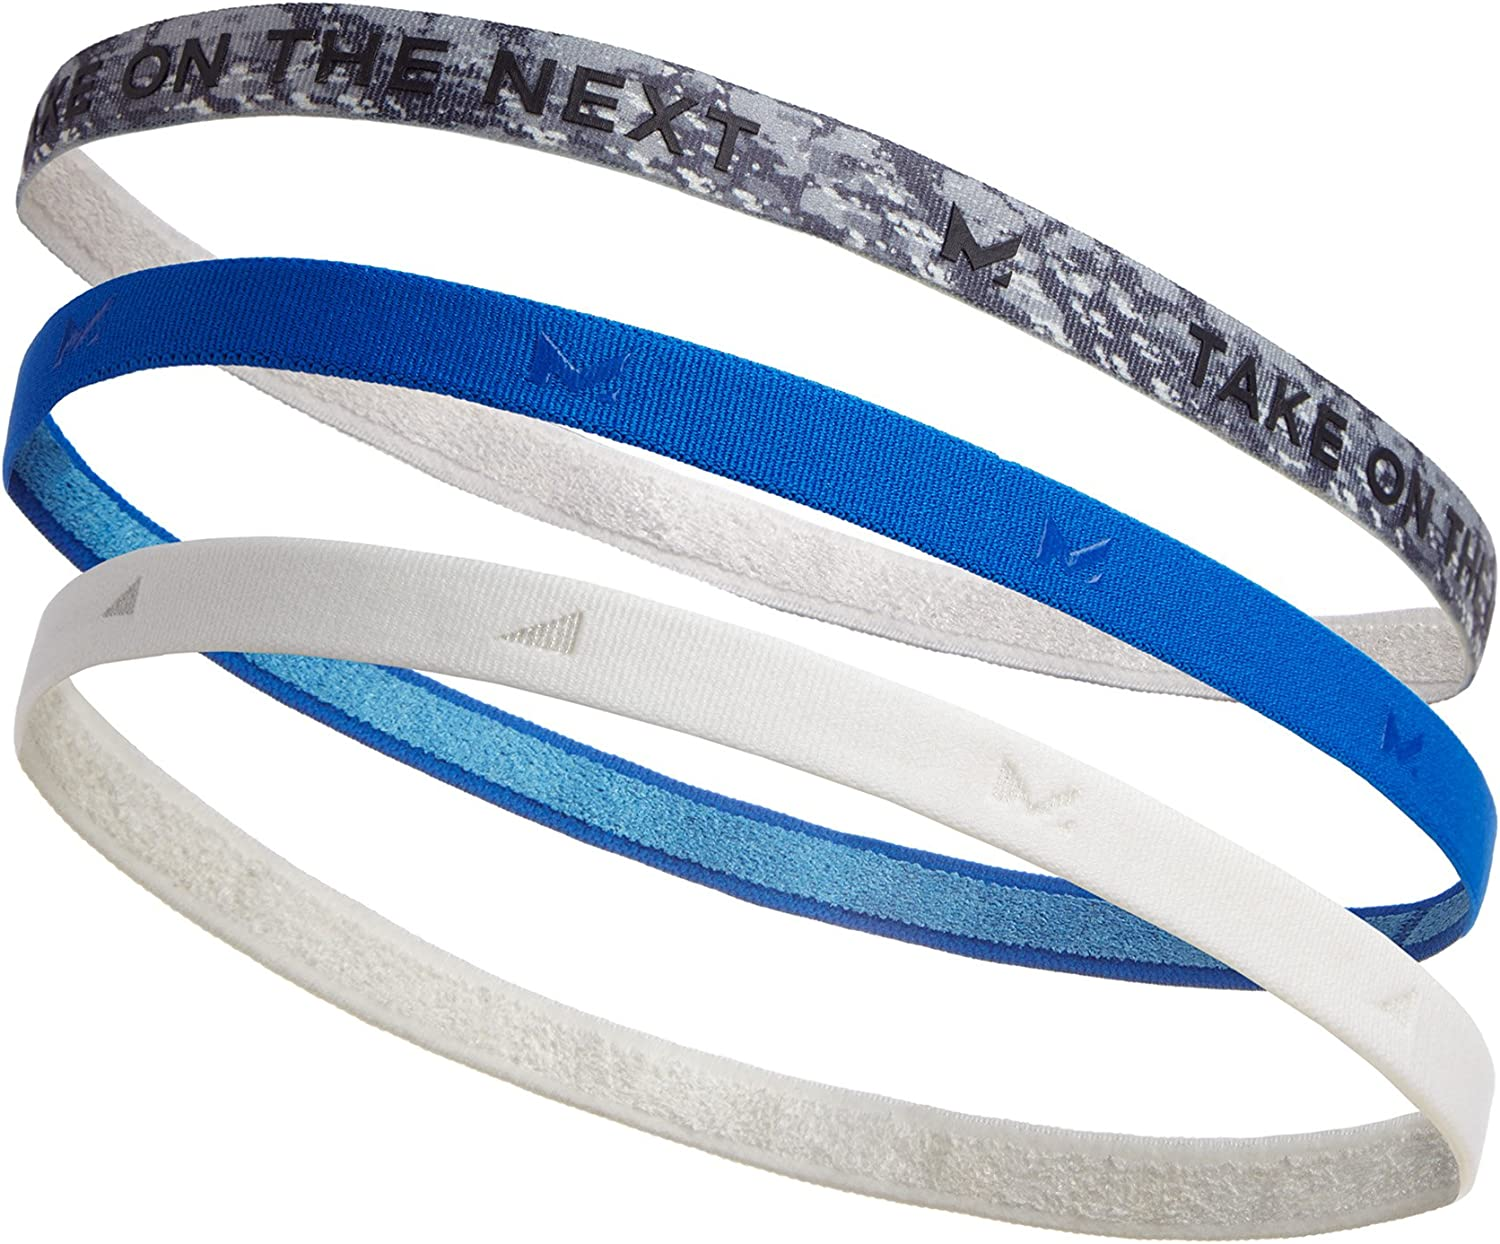 MISSION Unisex-Adult VaporActive Cooling Marathon Headband 3-Pack